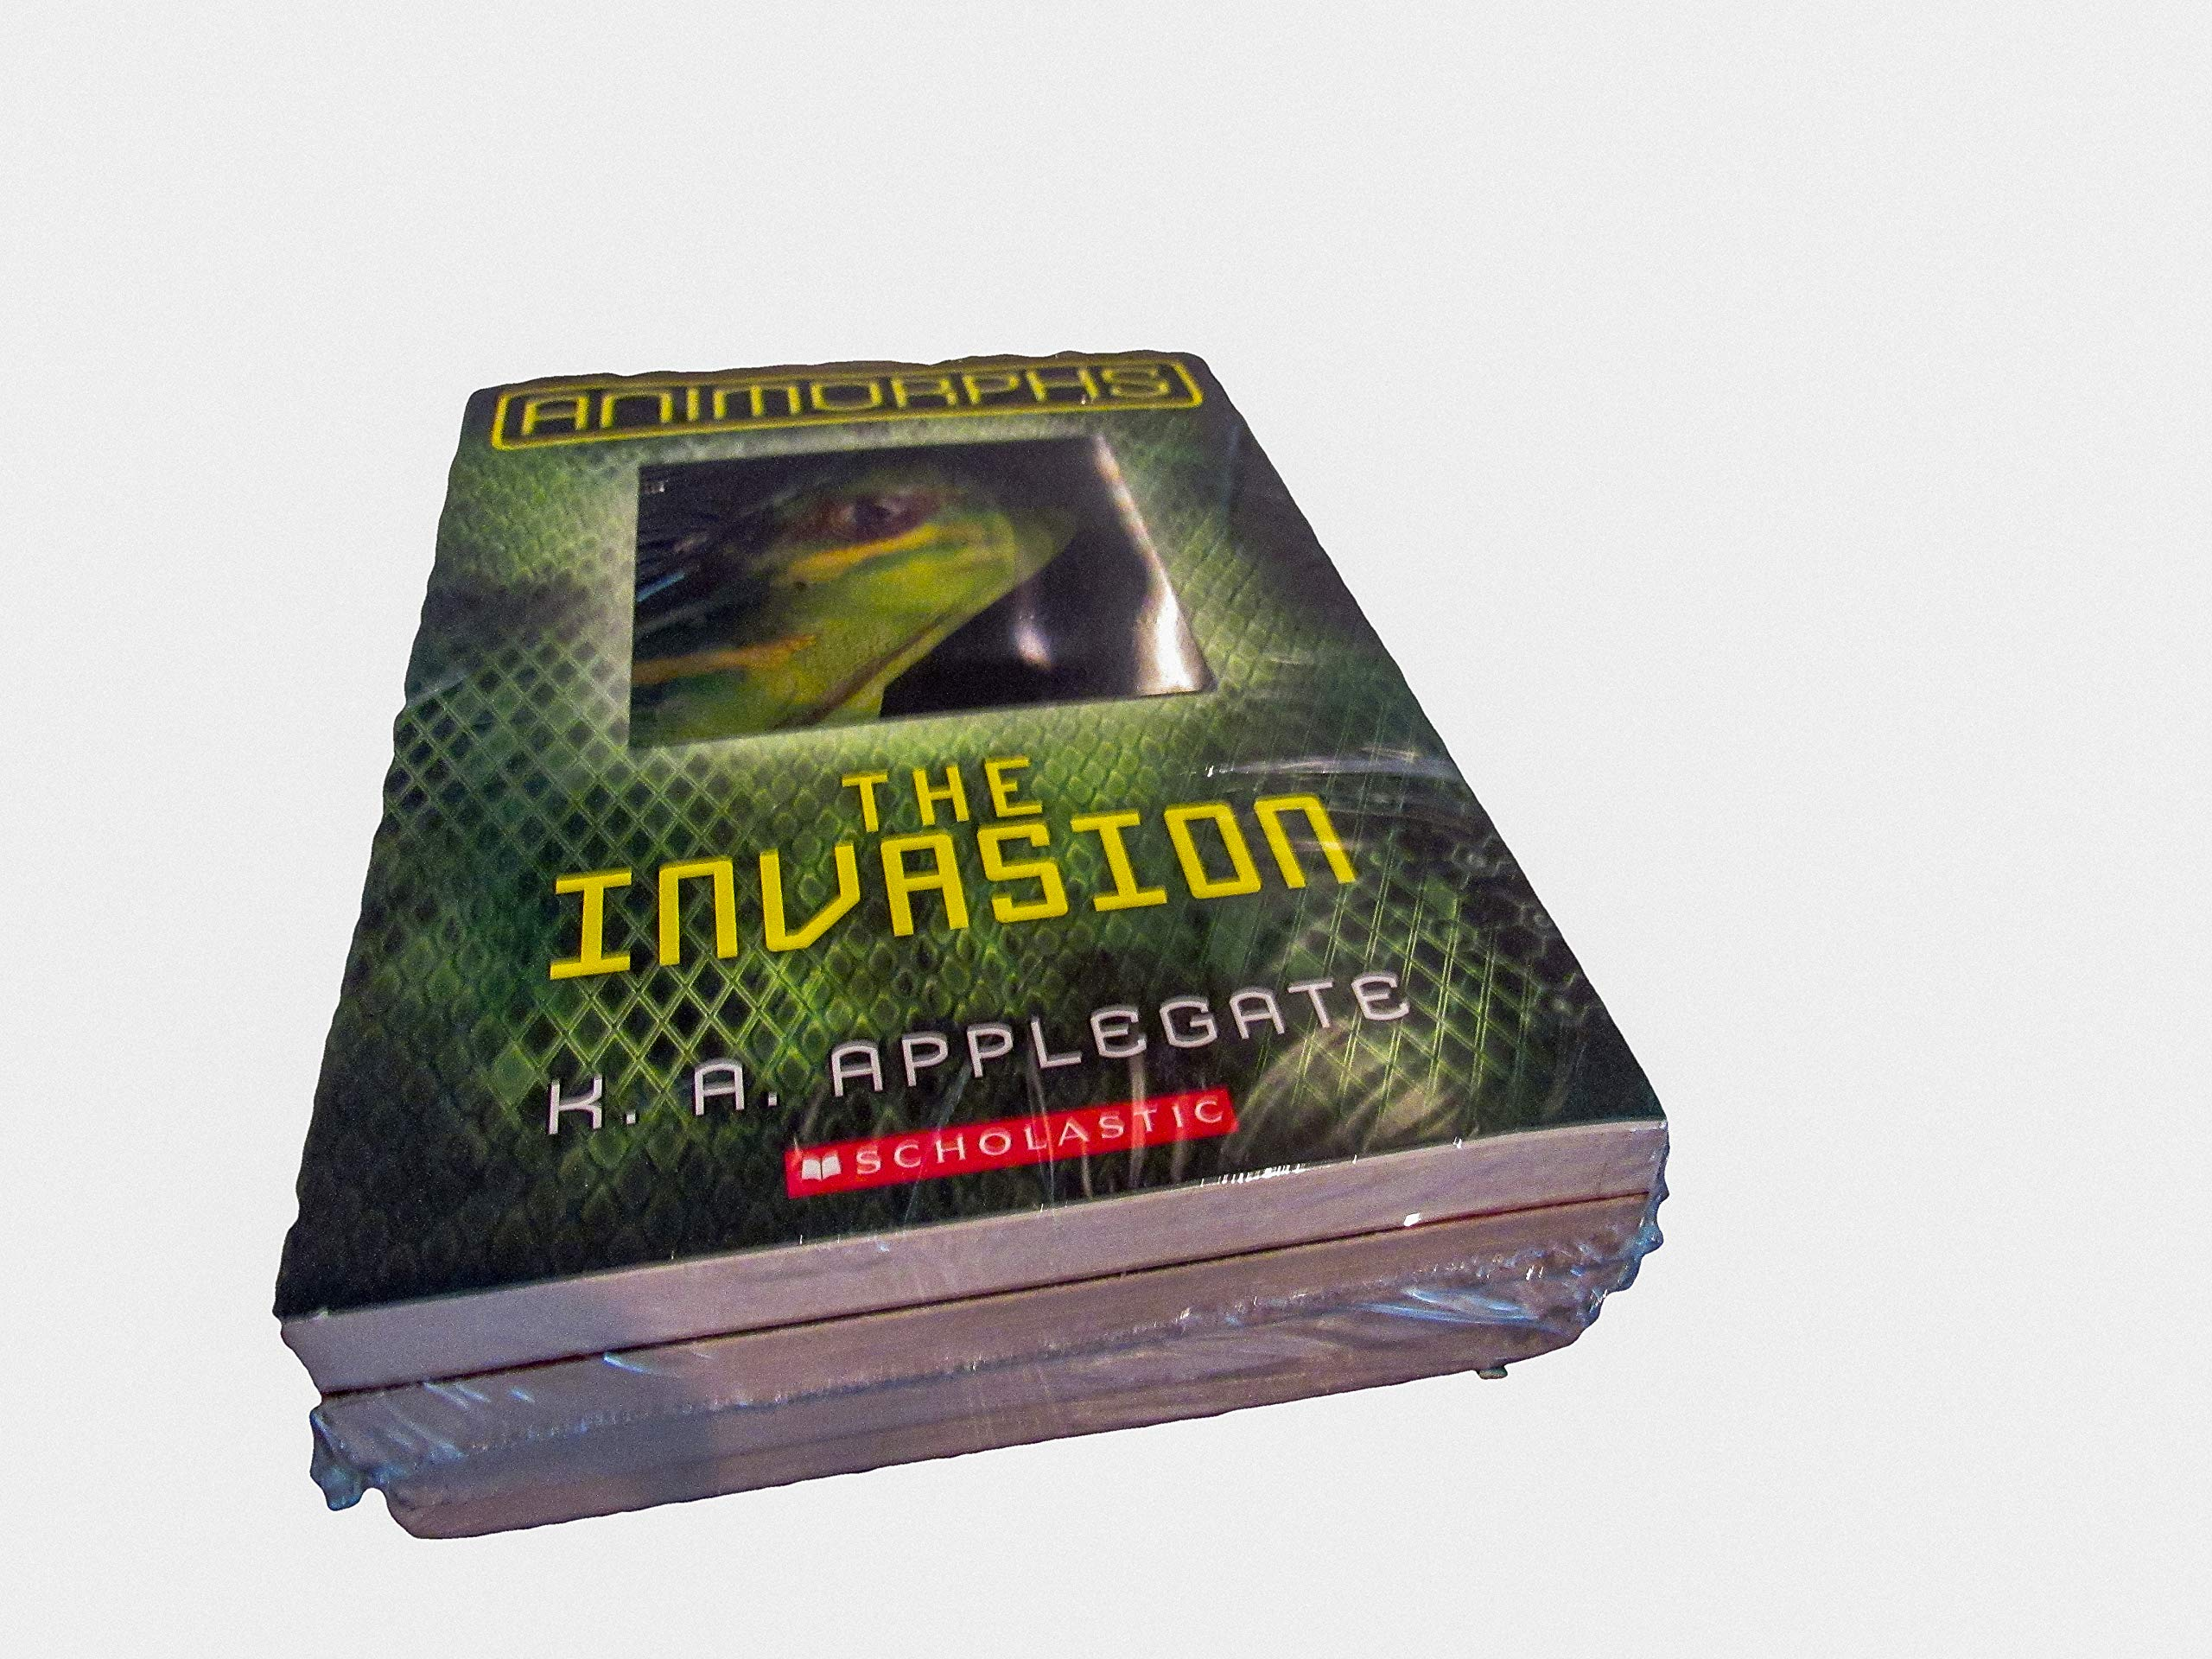 Animorphs Hologram 3d Book Set Books 1 4 The Invasion The Visitor